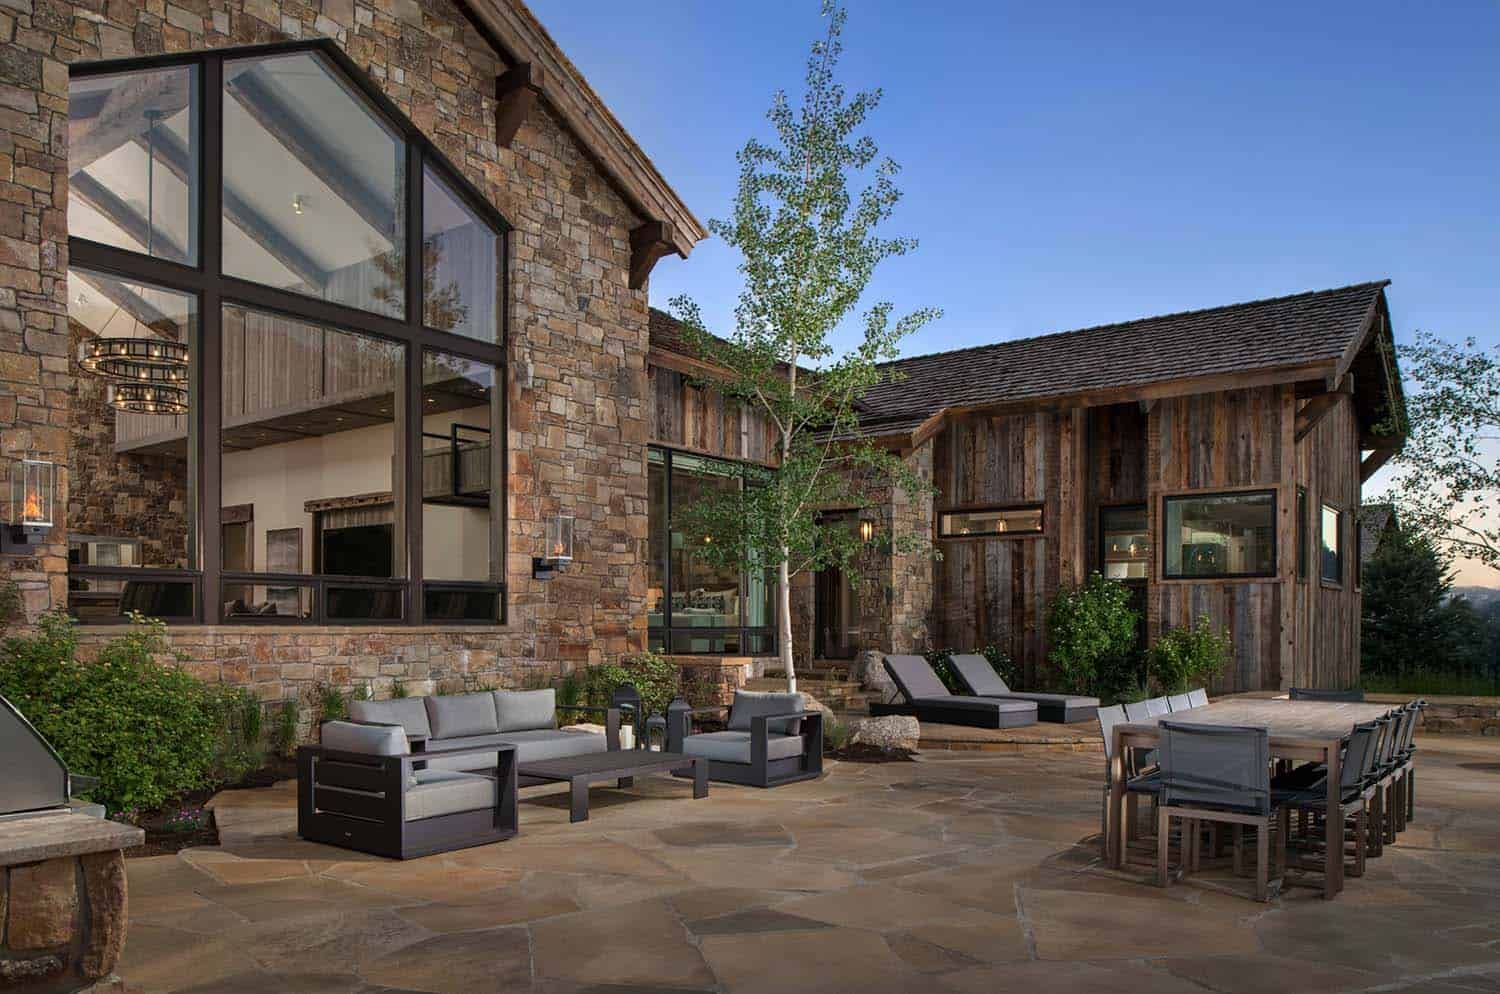 Timber frame home has a breathtaking backdrop of Wyomings mountains